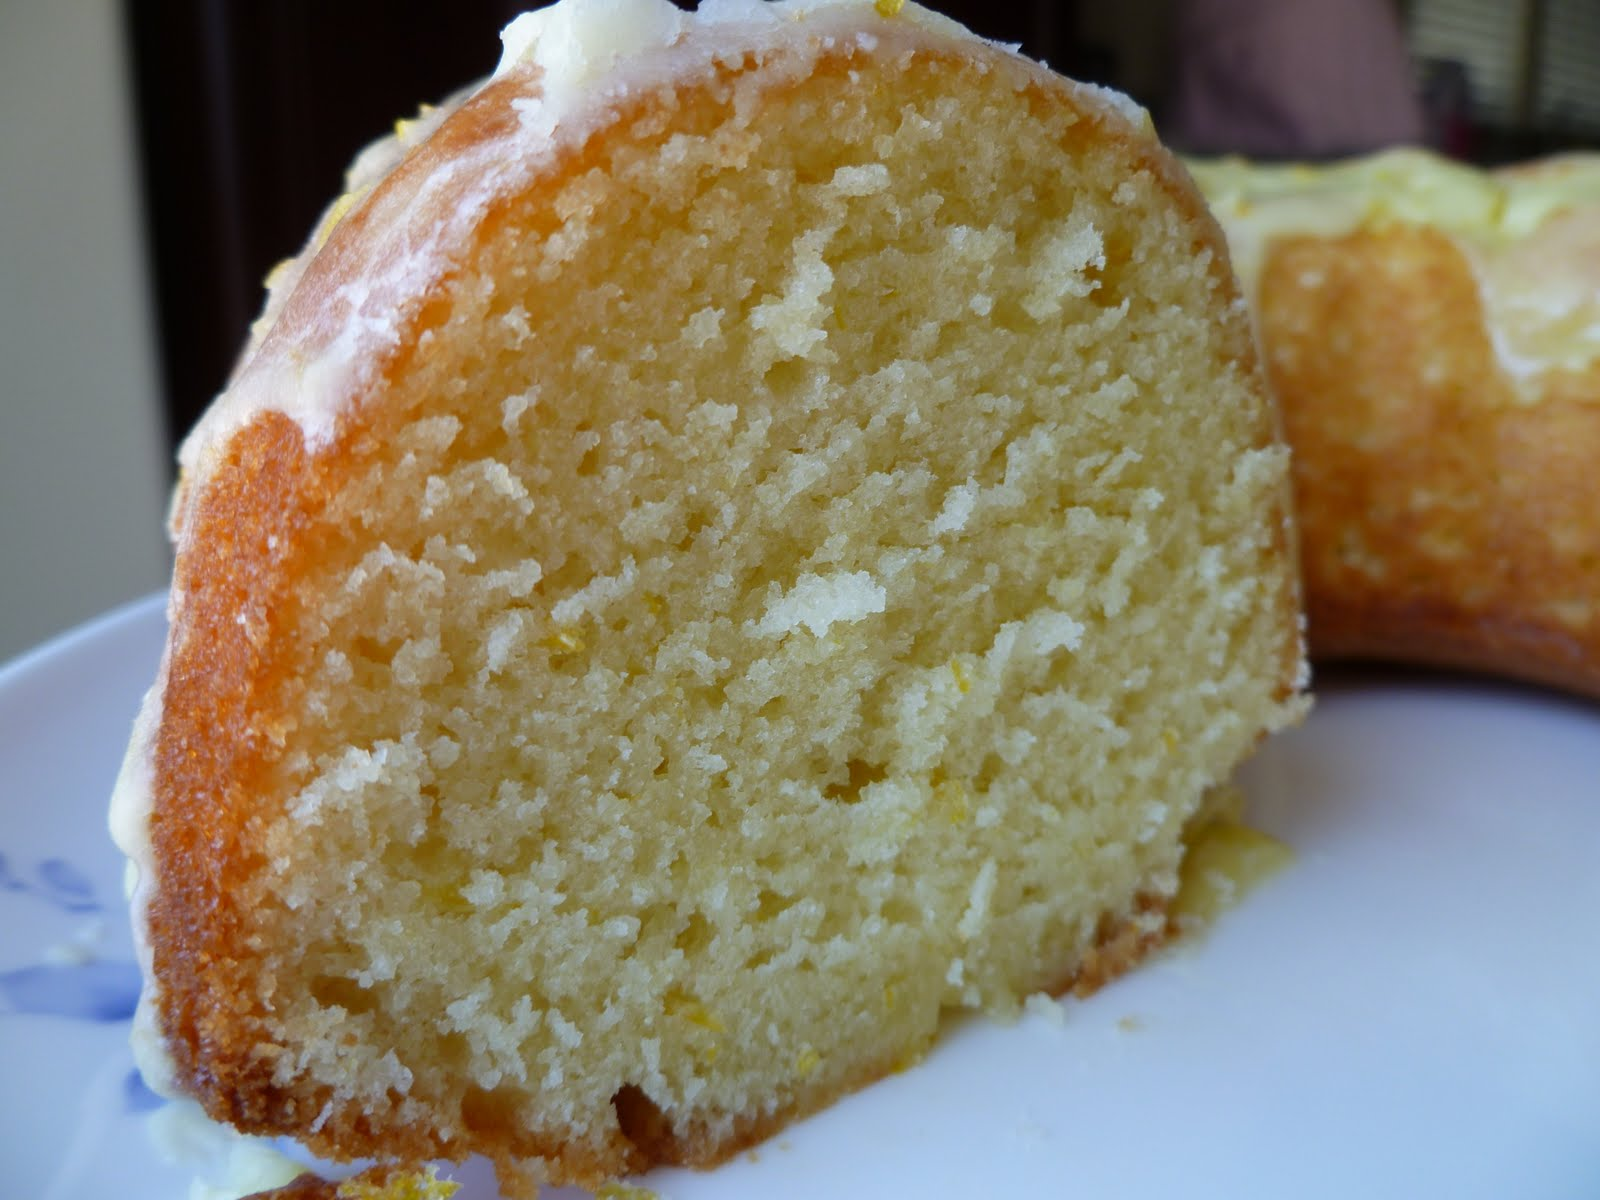 The Pastry Chef's Baking: Orange Pound Cake